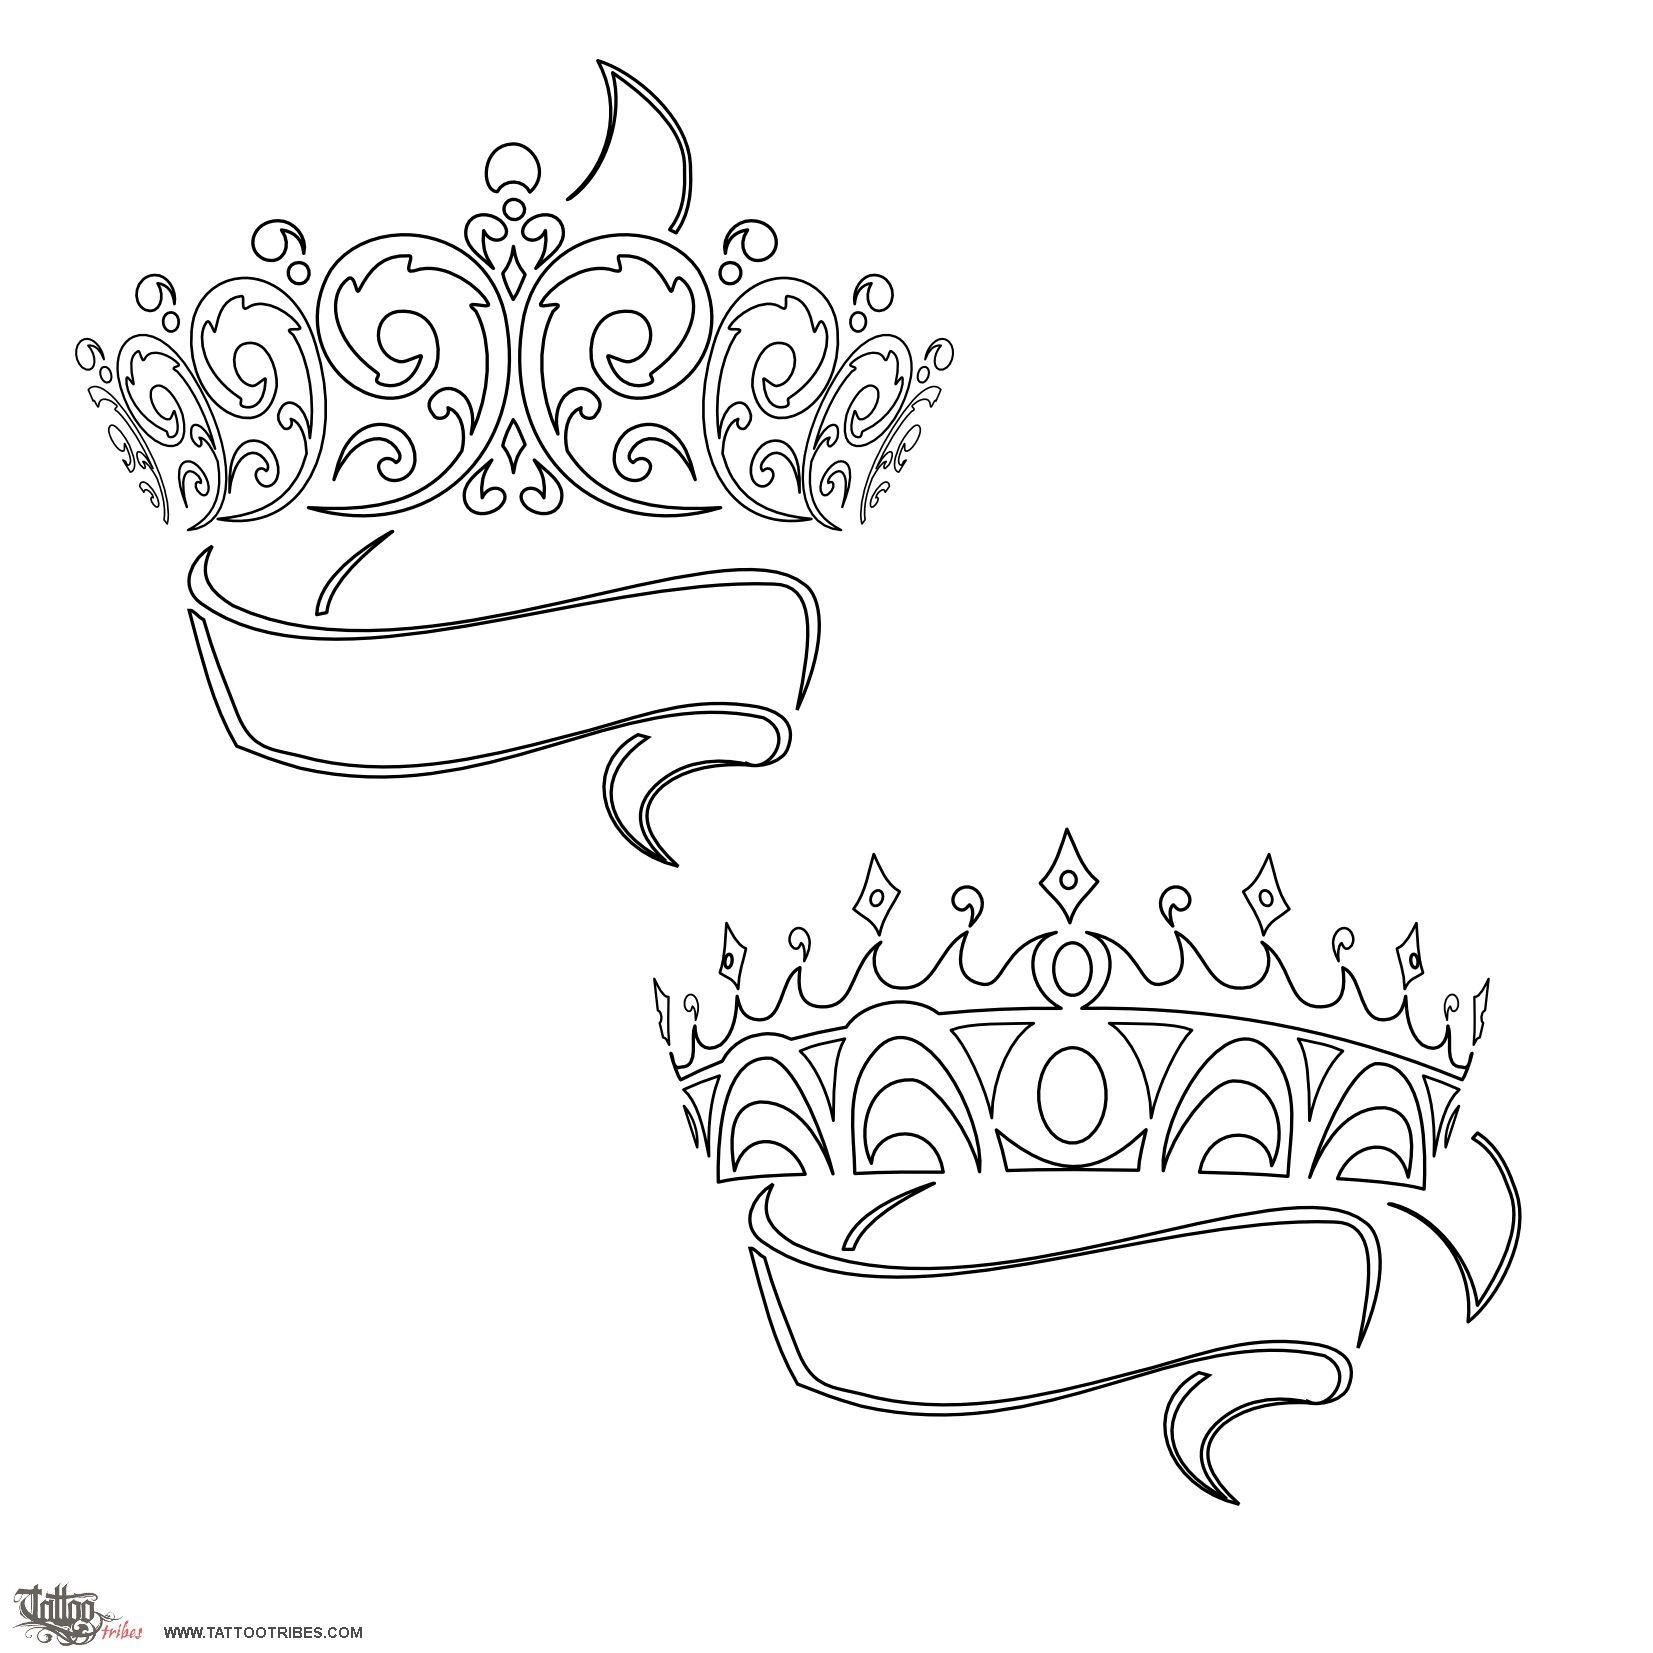 Colouring in kings and queens - Love The King And Queen Crown Idea